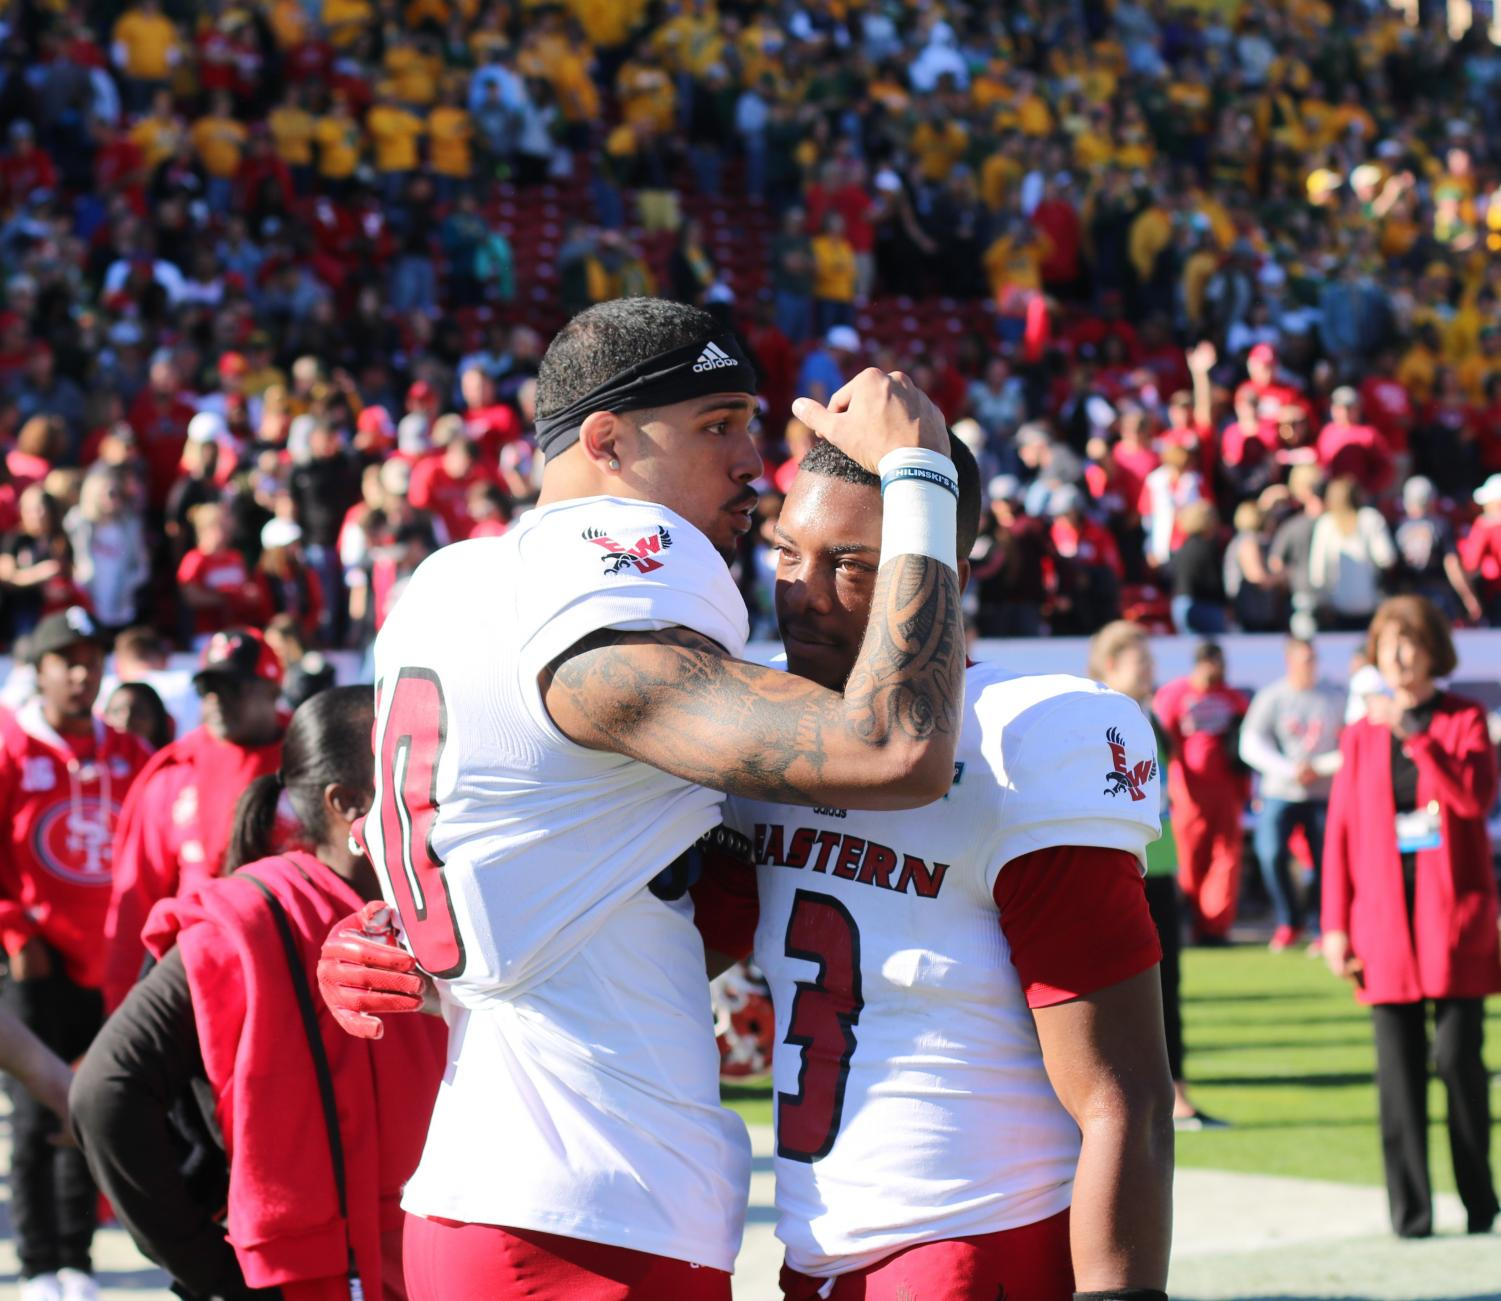 Freshman Talolo Limu-Jones consoles Sophomore Eric Barriere after the Eagles 38-24 loss to NDSU in the FCS National Championship on Saturday. Barriere threw for 198 yards and rushed a touchdown in the game.